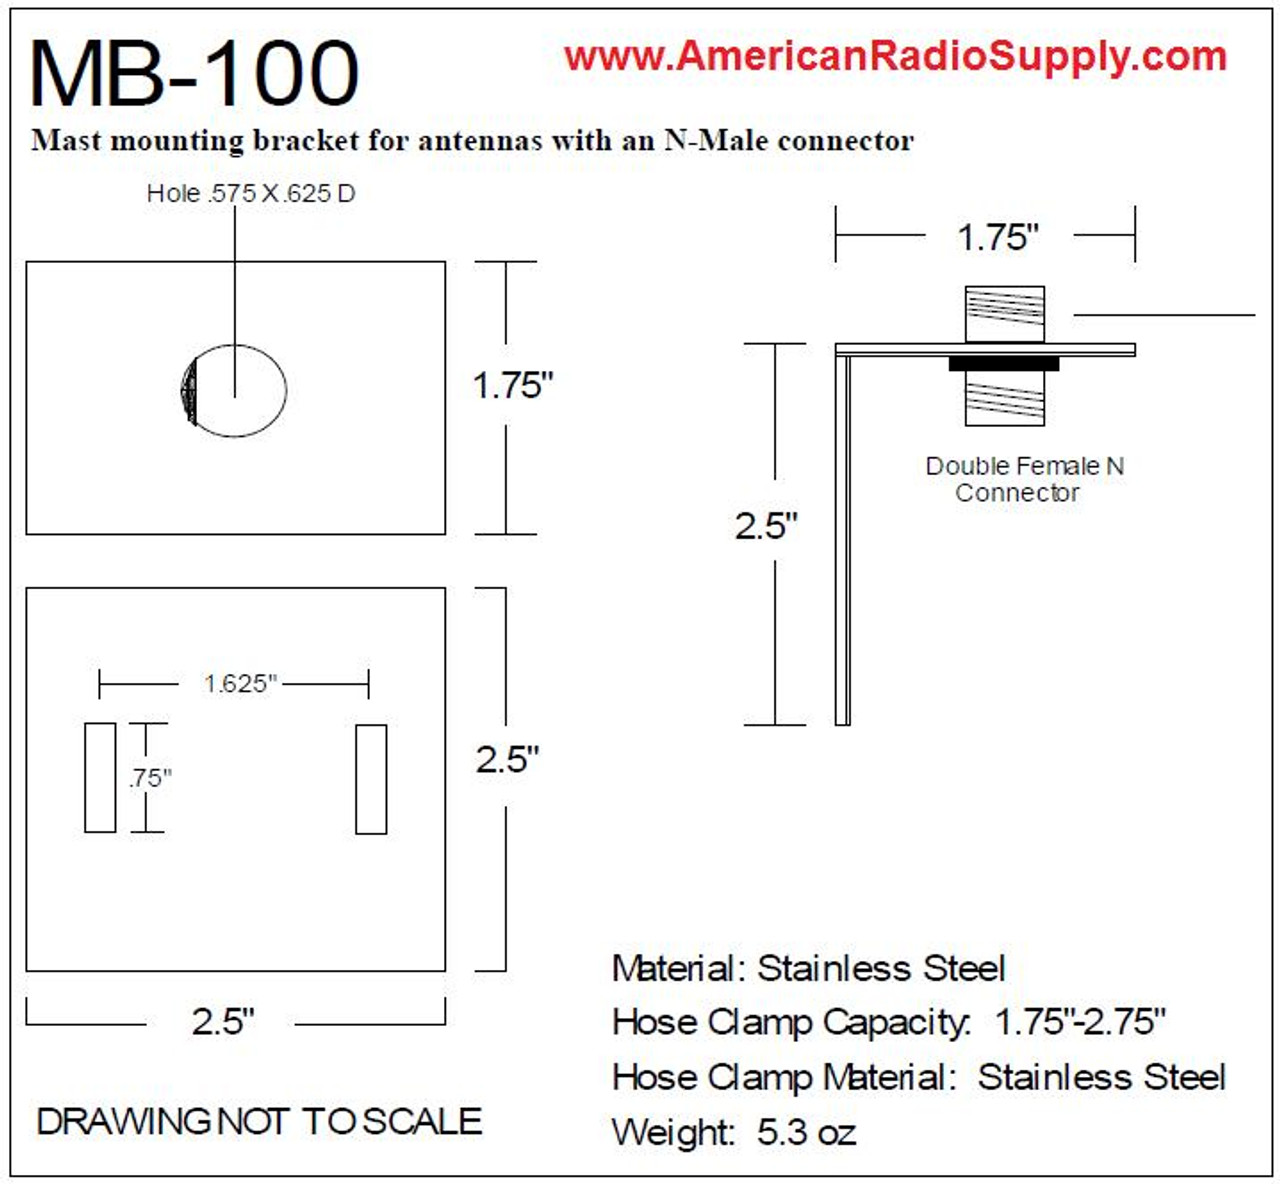 Comet MB-100 - Antenna Mounting Bracket Type N Female Connector